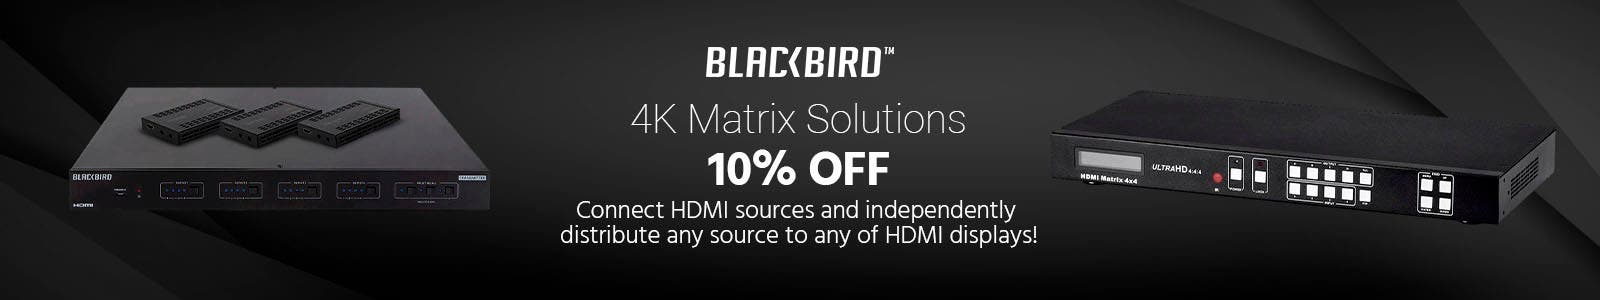 10% OFF